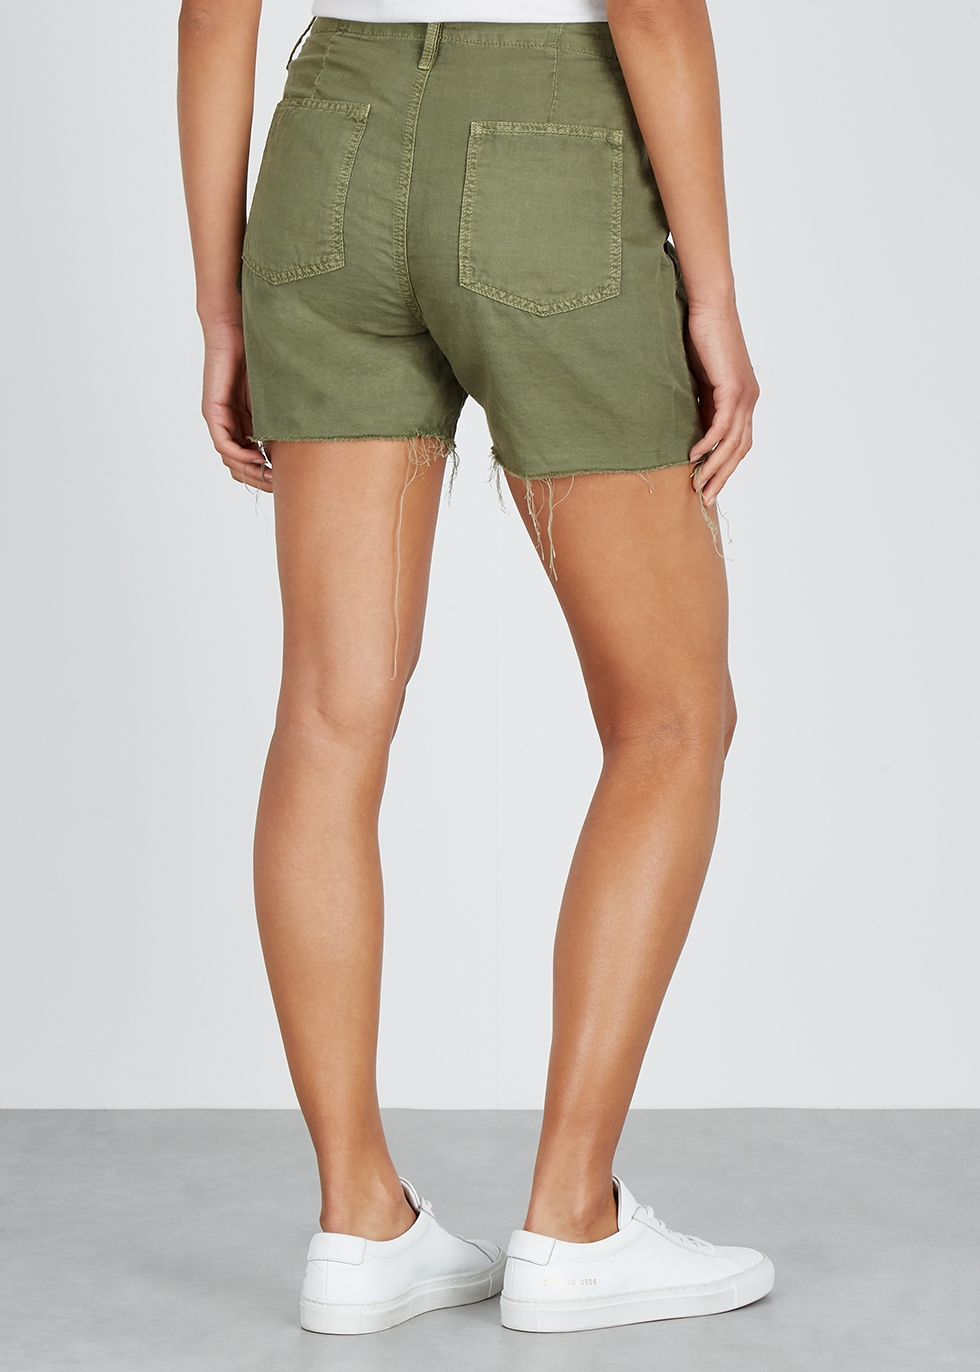 The Shaker green cotton-blend shorts - Mother